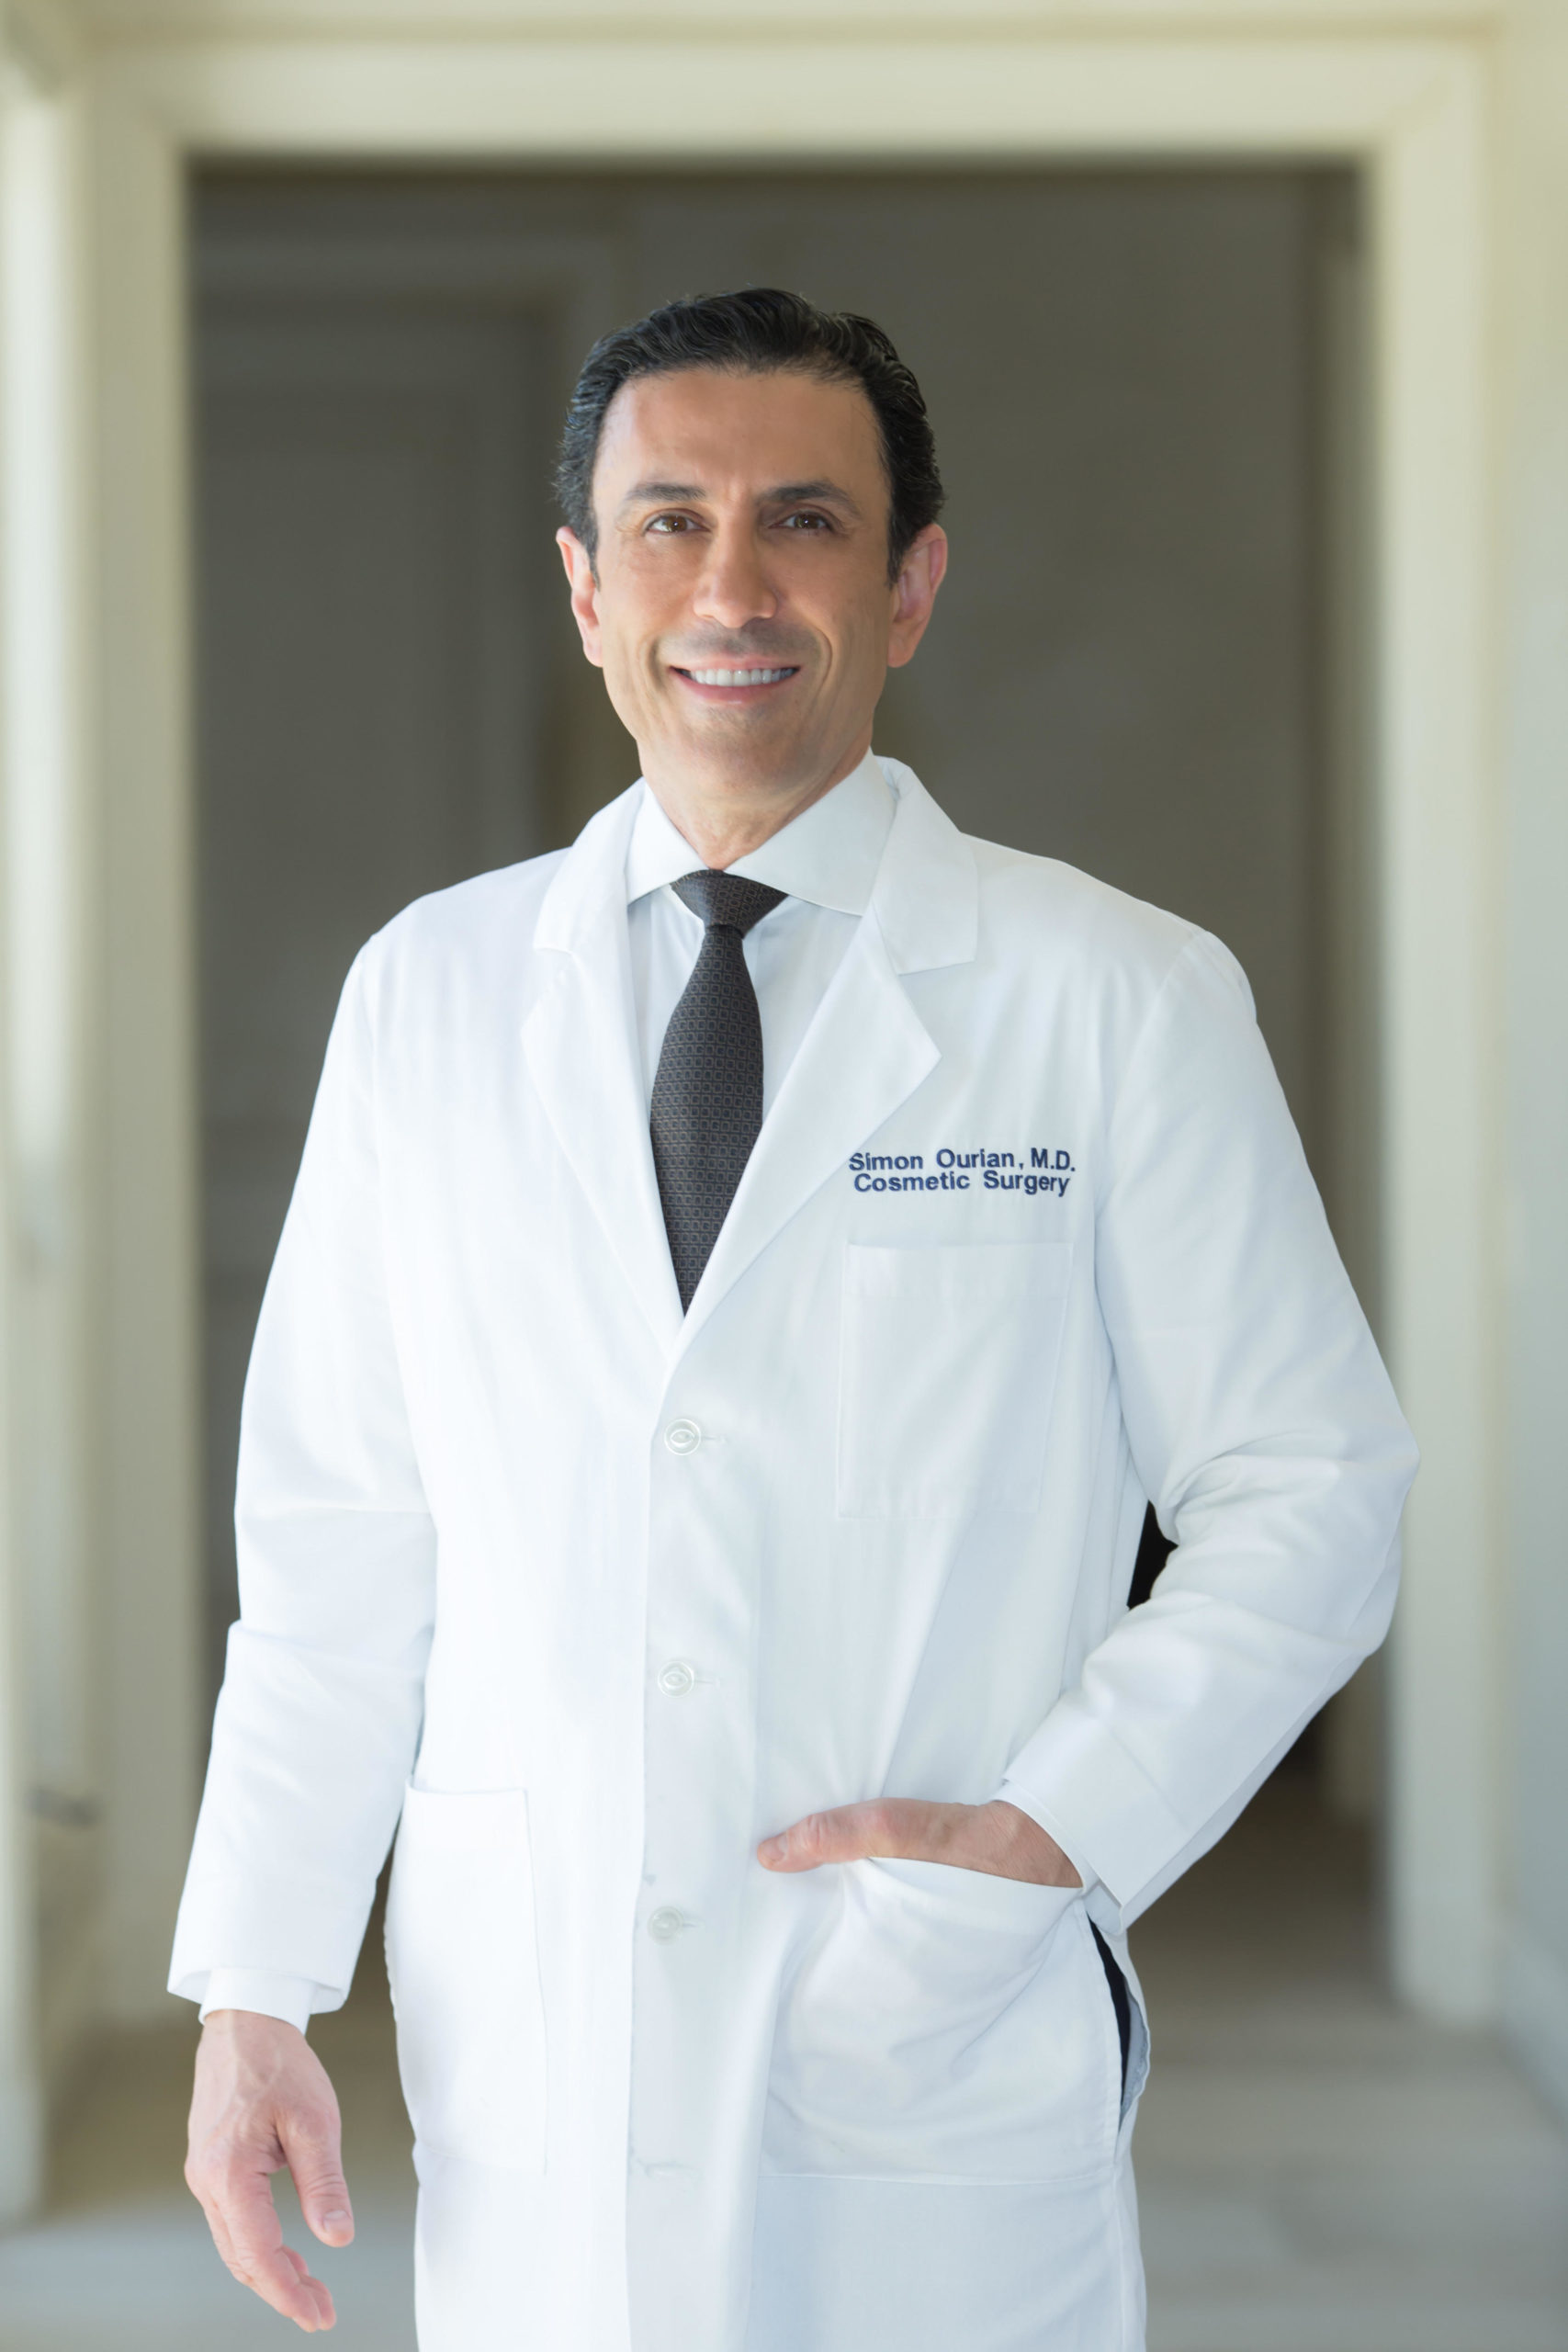 Dr. Ourian